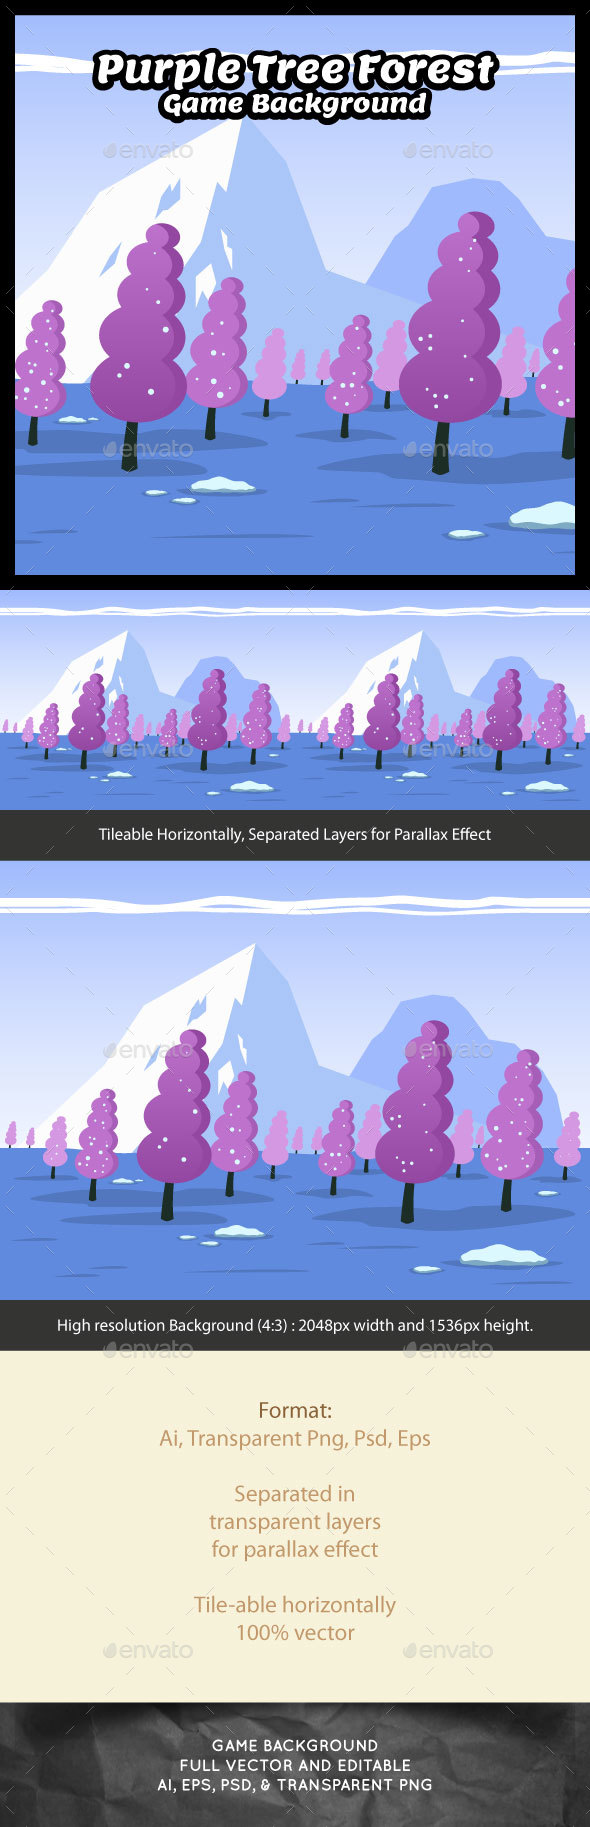 Purple Tree Forest Game Background - Backgrounds Game Assets